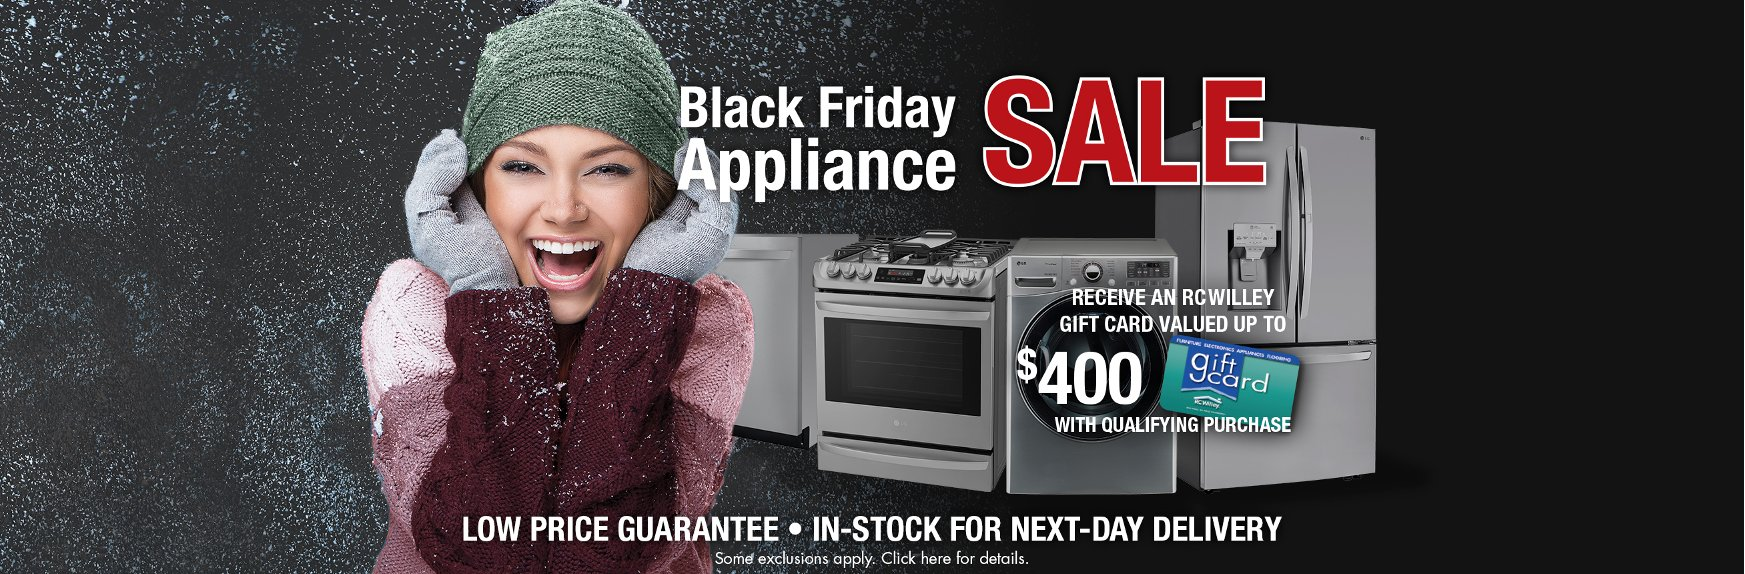 Save on Appliances during the Black Friday Sale at RC Willey | Appliance Store | RC Willey